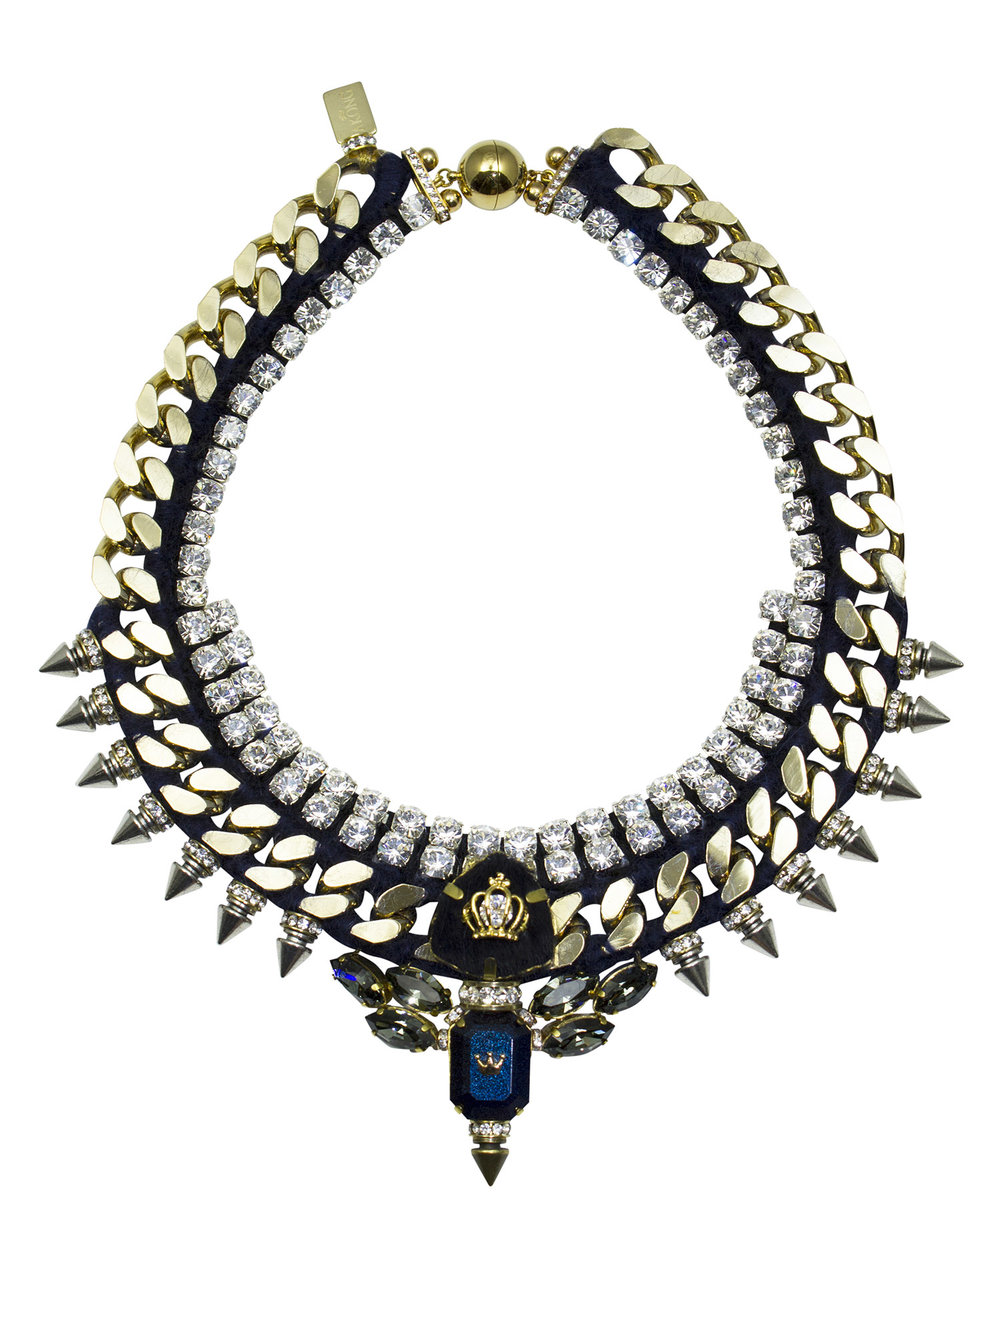 213N Navy Aviator Spiked Necklace.jpg